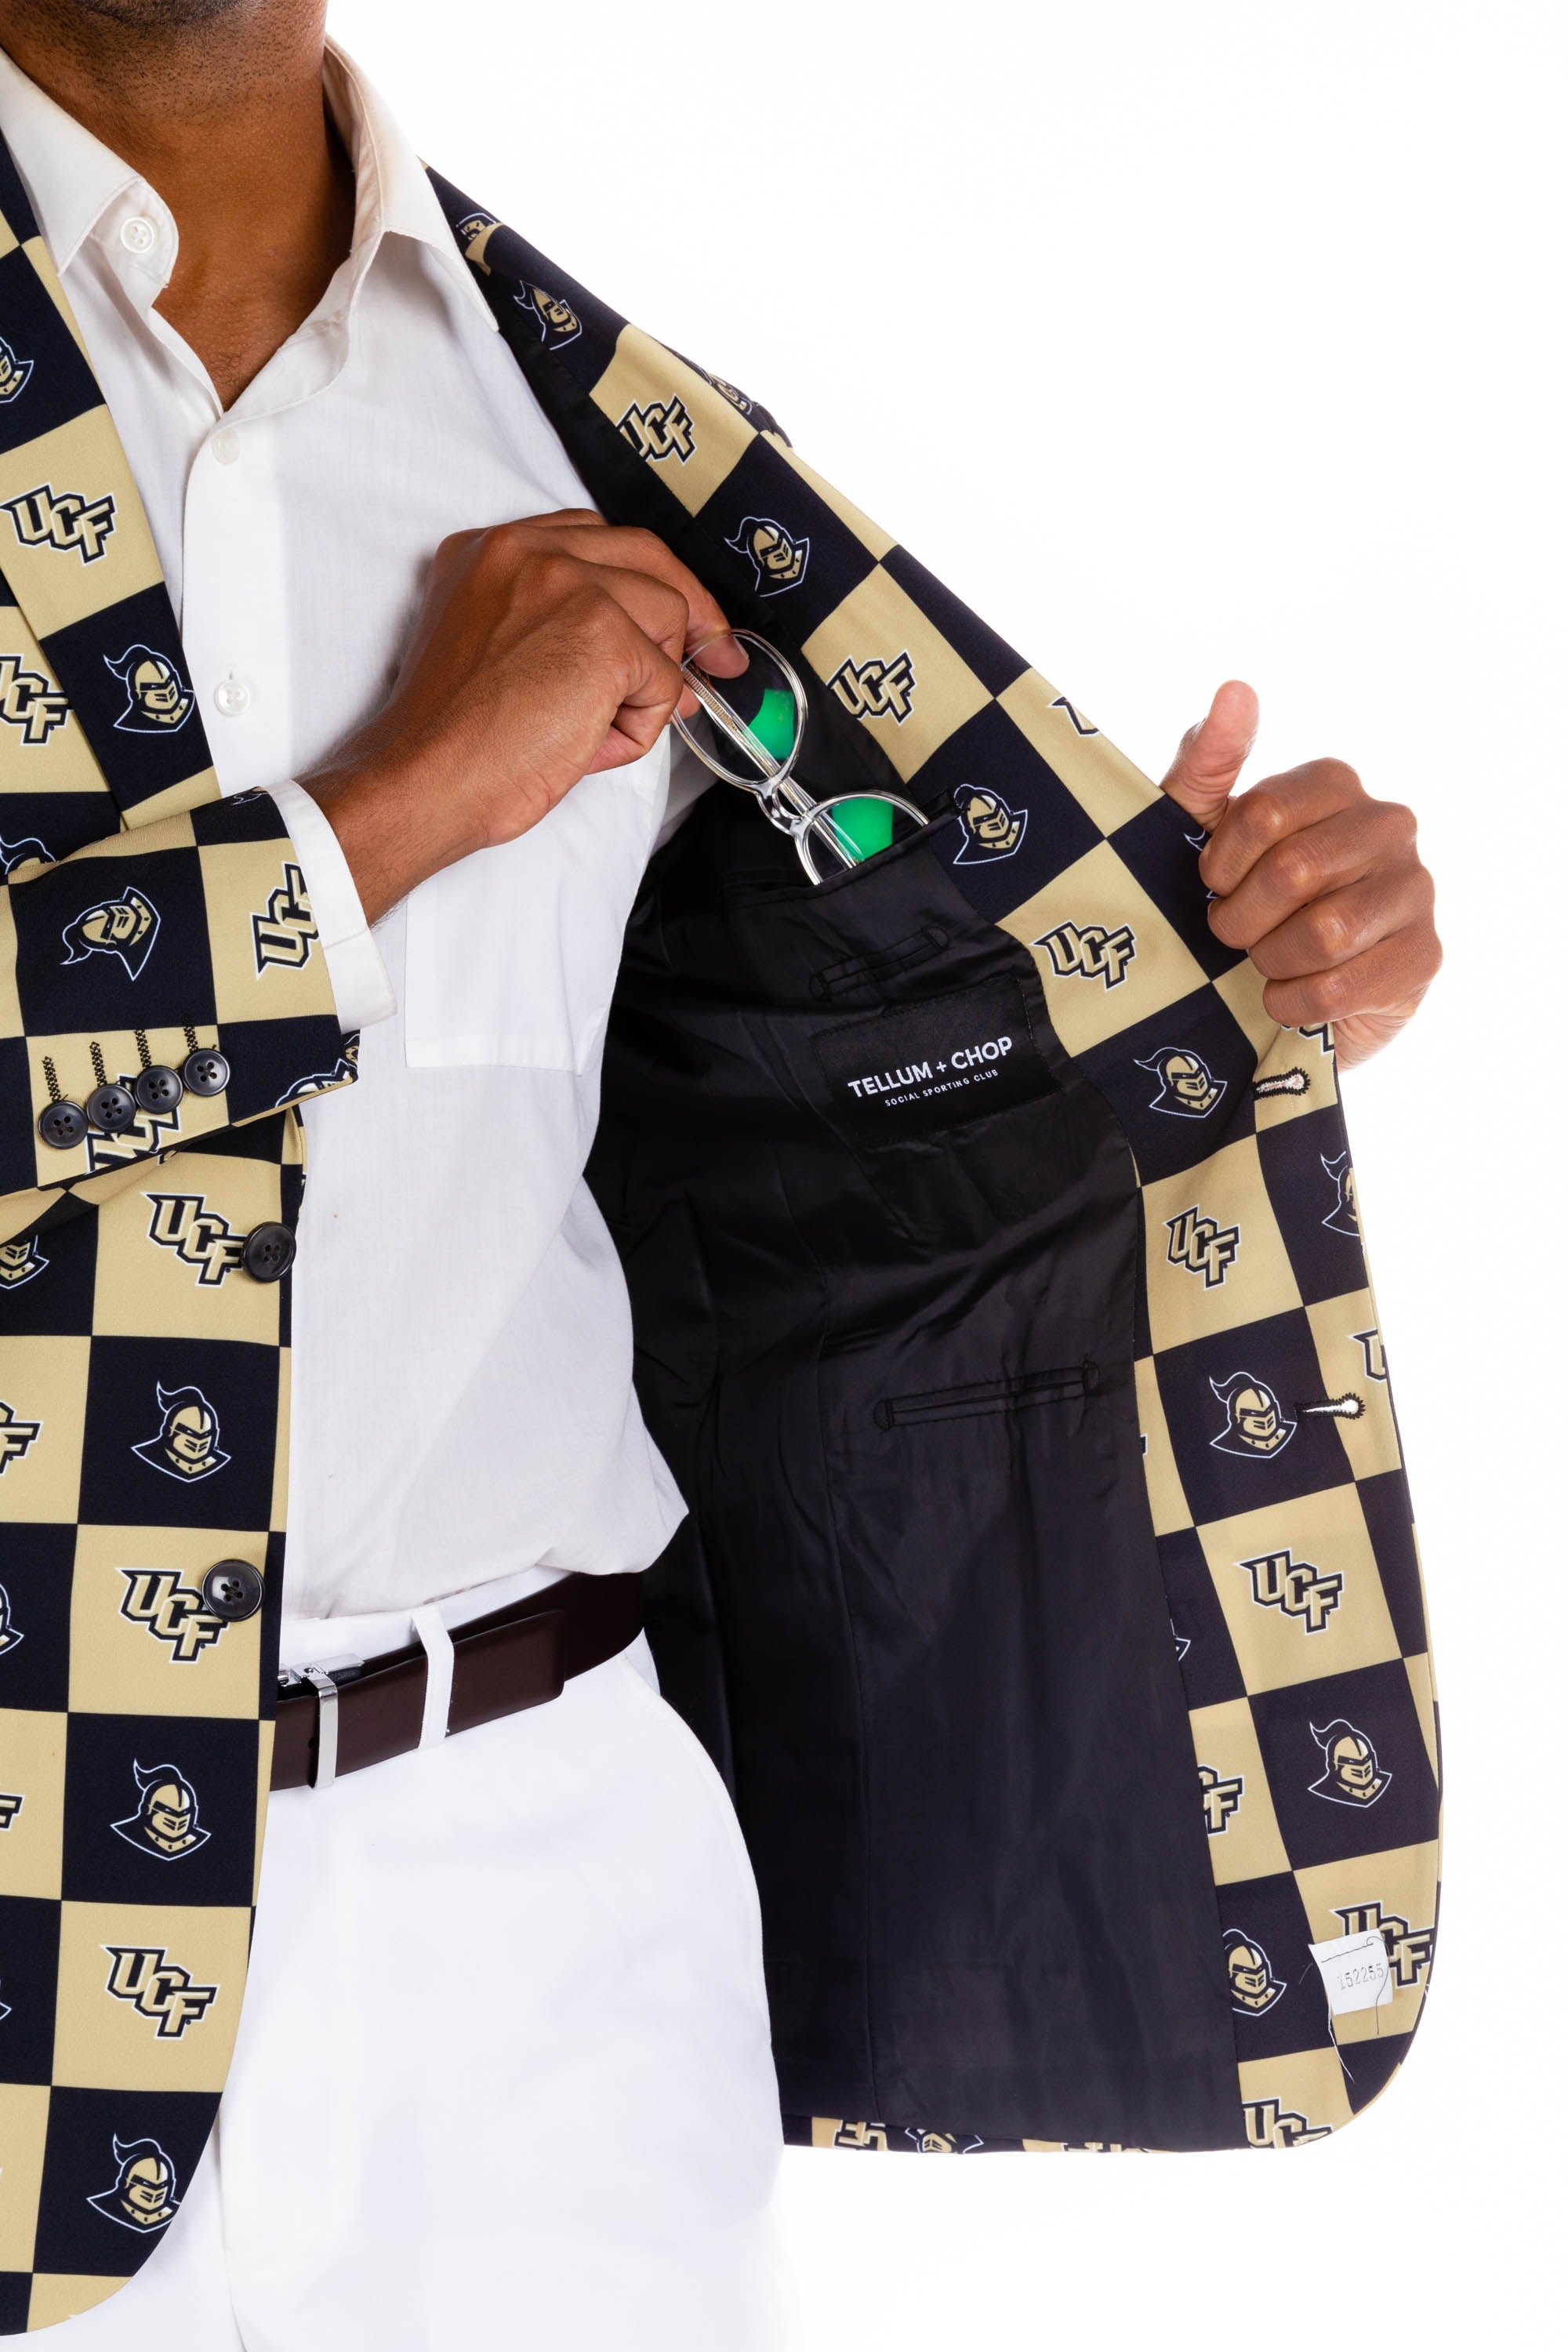 University of Central Florida Gameday Blazer Interior Pocket